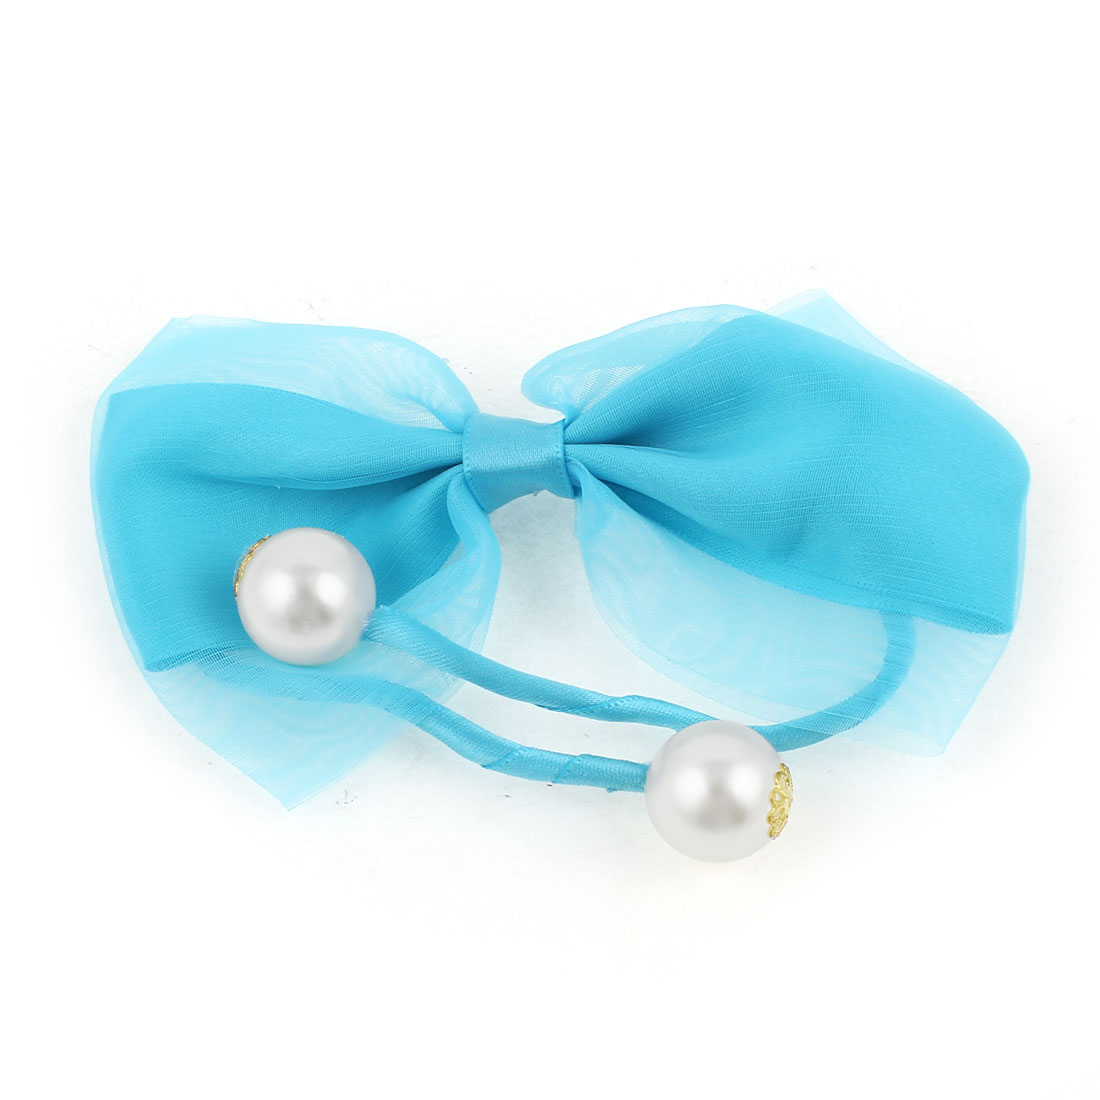 Plastic Pearl Bowtie Decor Rope DIY Wire Hair Band Tie Bracelet Blue